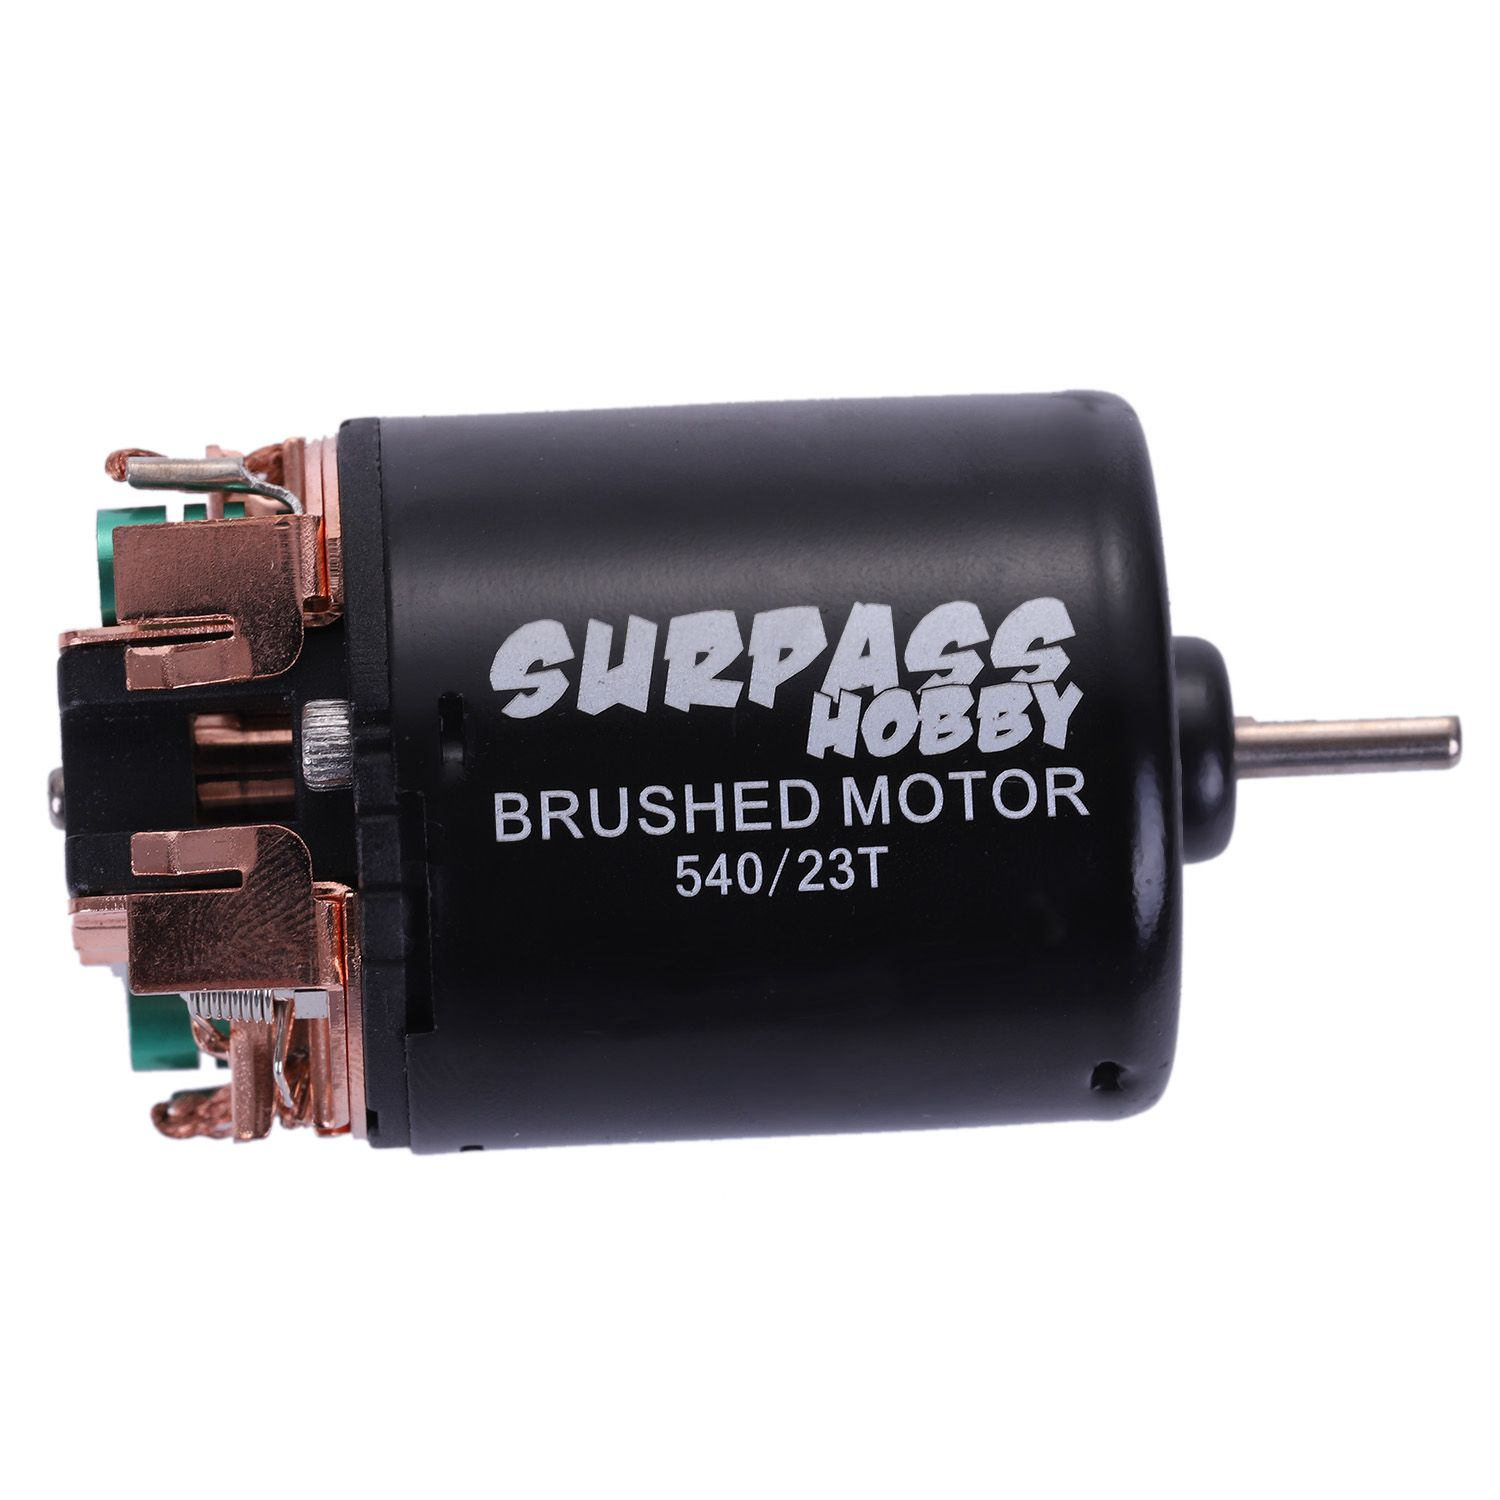 SURPASS HOBBY 540 23T Brushed Motor for RC Car 1/10 Rock Crawler 4WD Vehicle RC Car Parts RC Motor